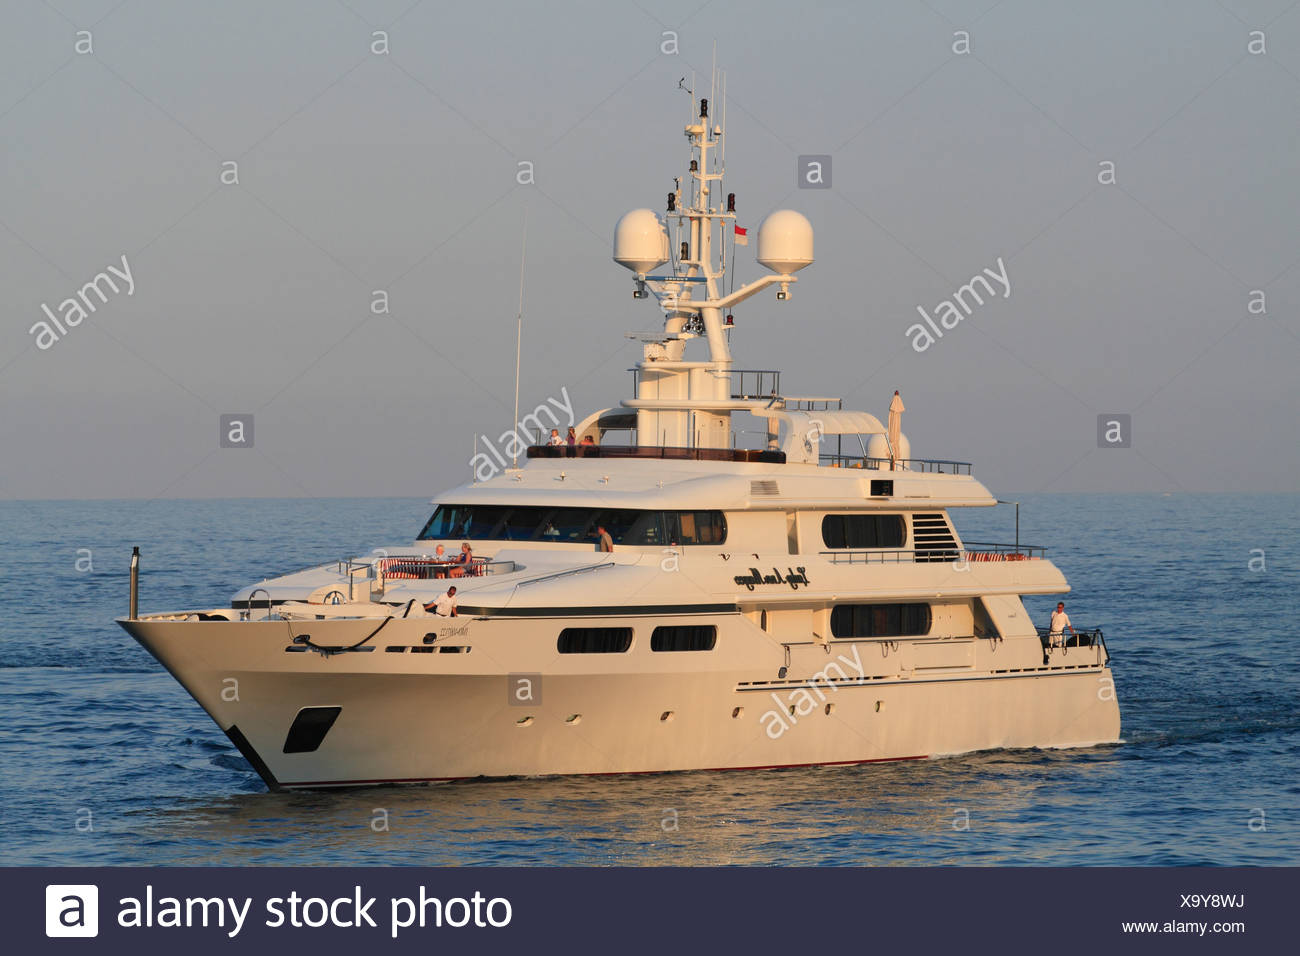 Lady Ann Magee, a cruiser built by Codecasa, length: 49.90 meters, built in 2001, Monaco, French Riviera, Mediterranean Sea - Stock Image